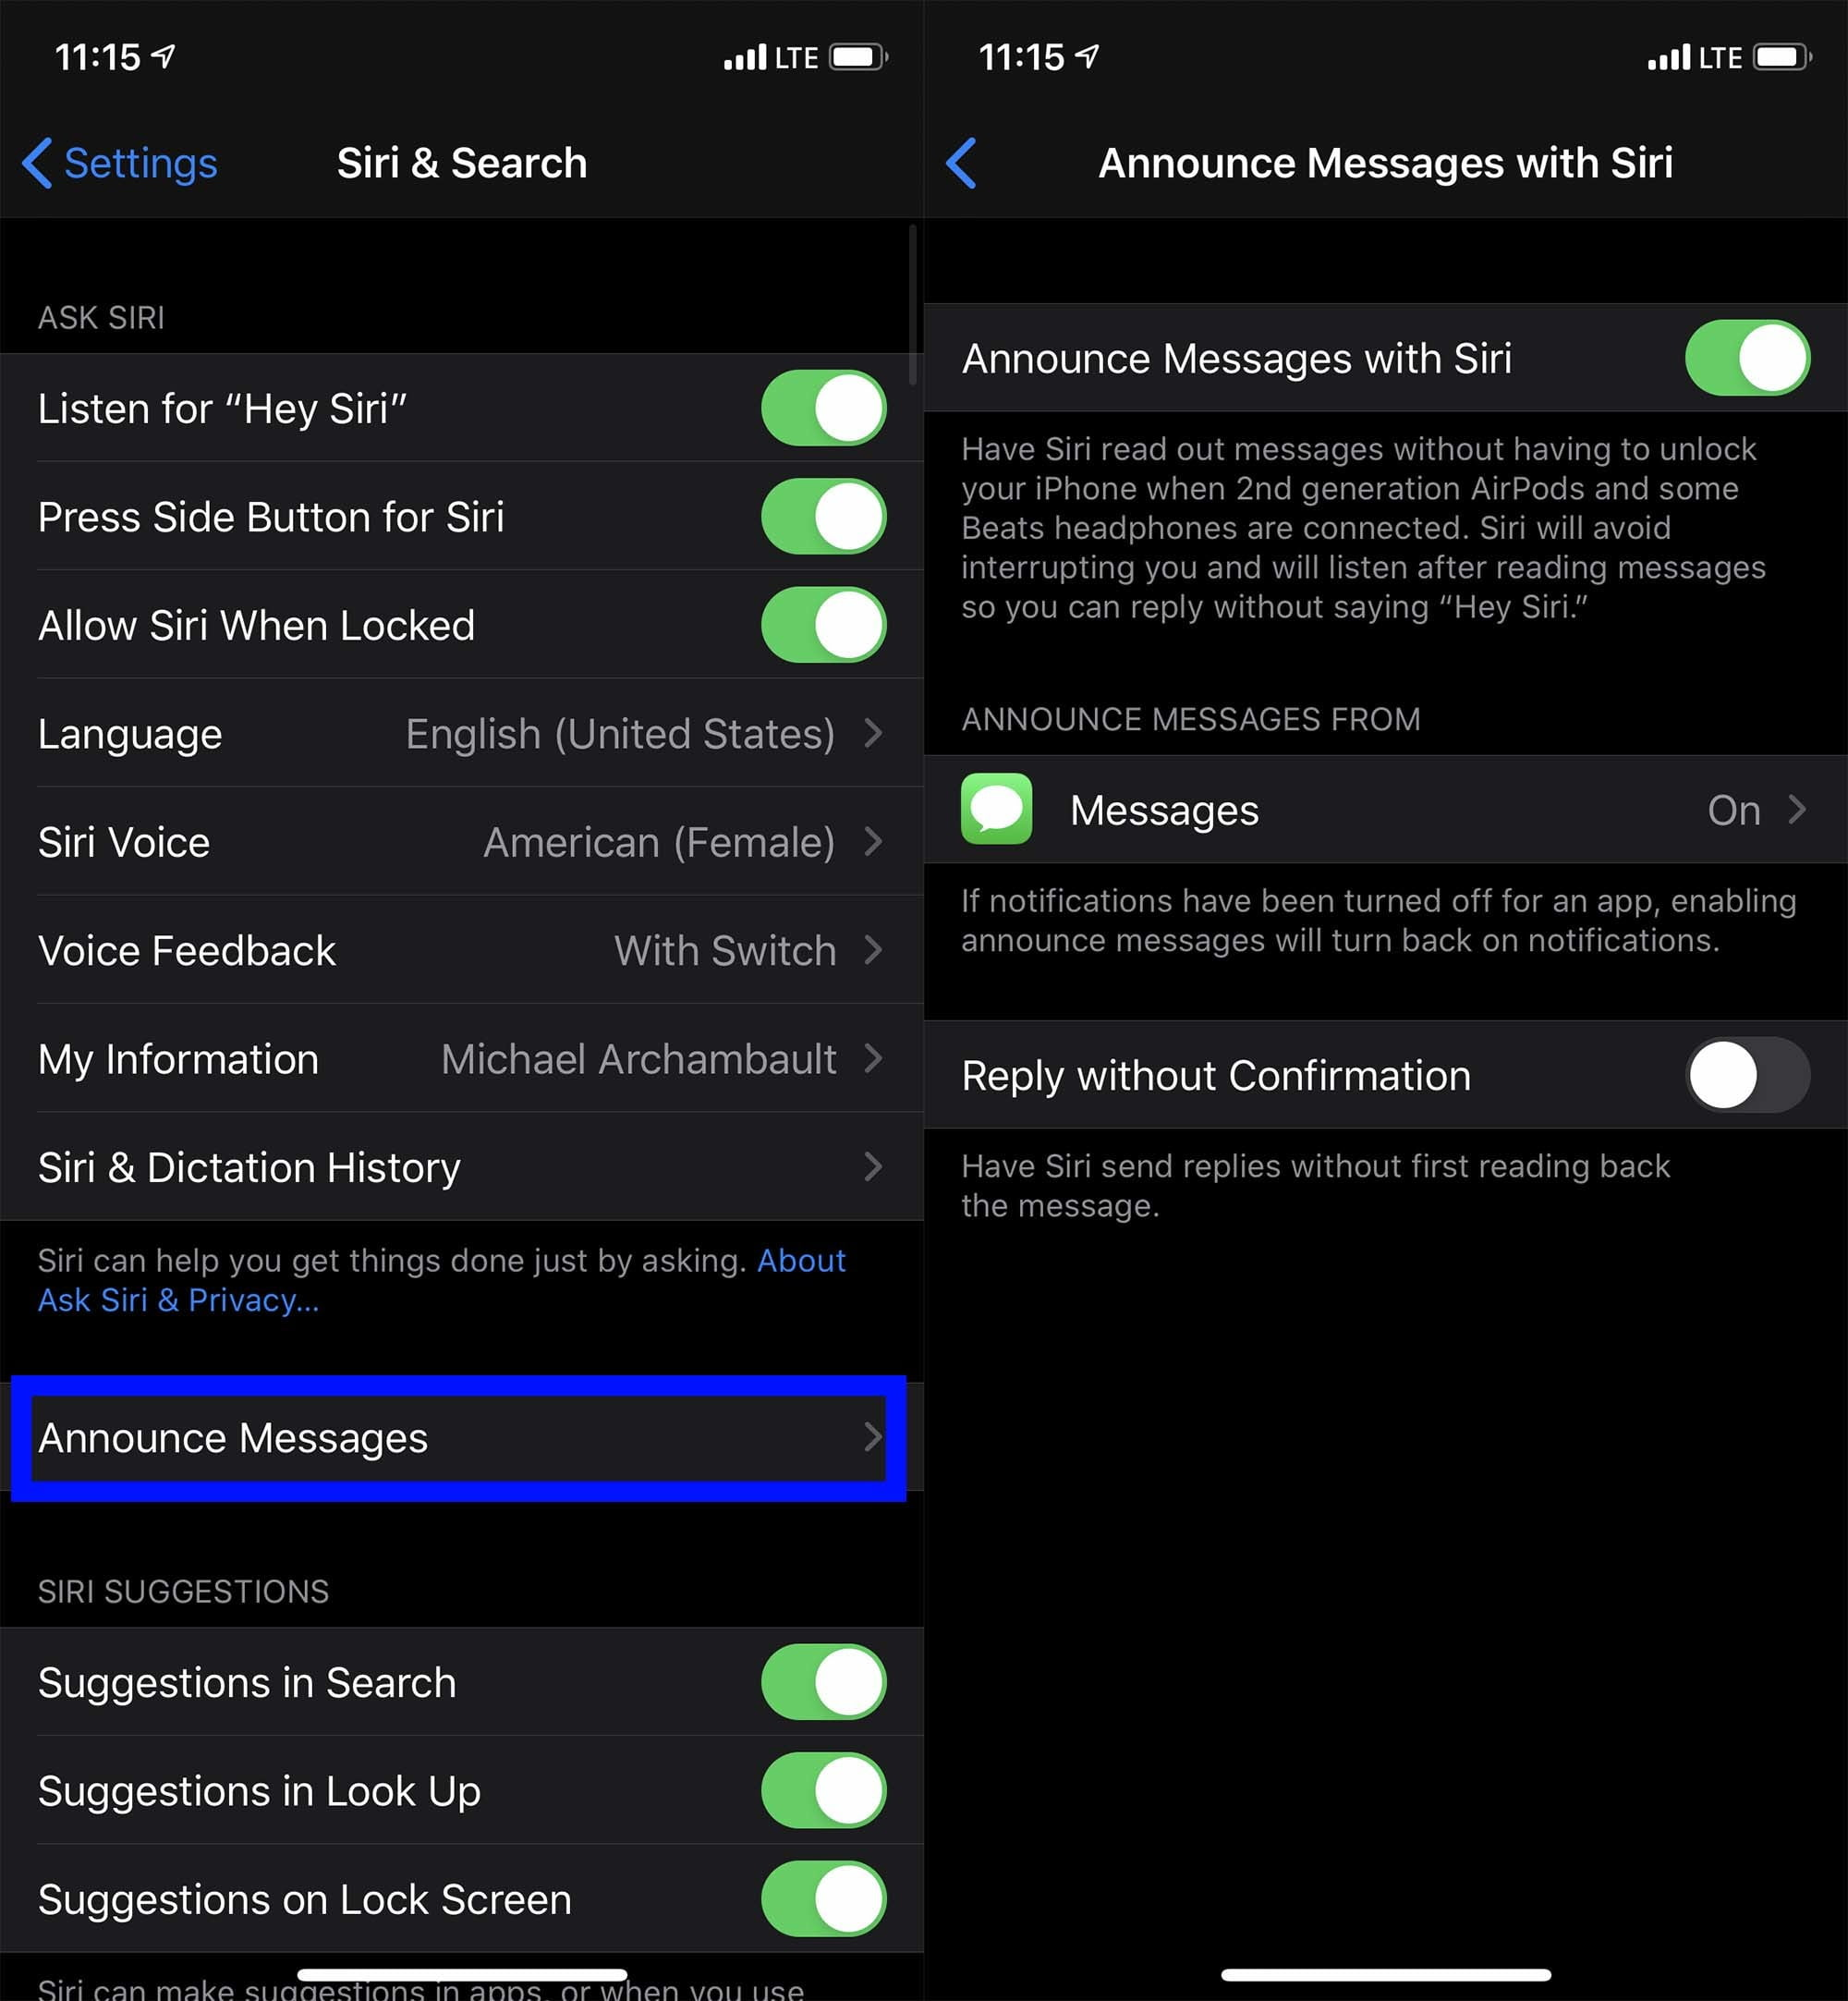 Enable Announce Messages with Siri